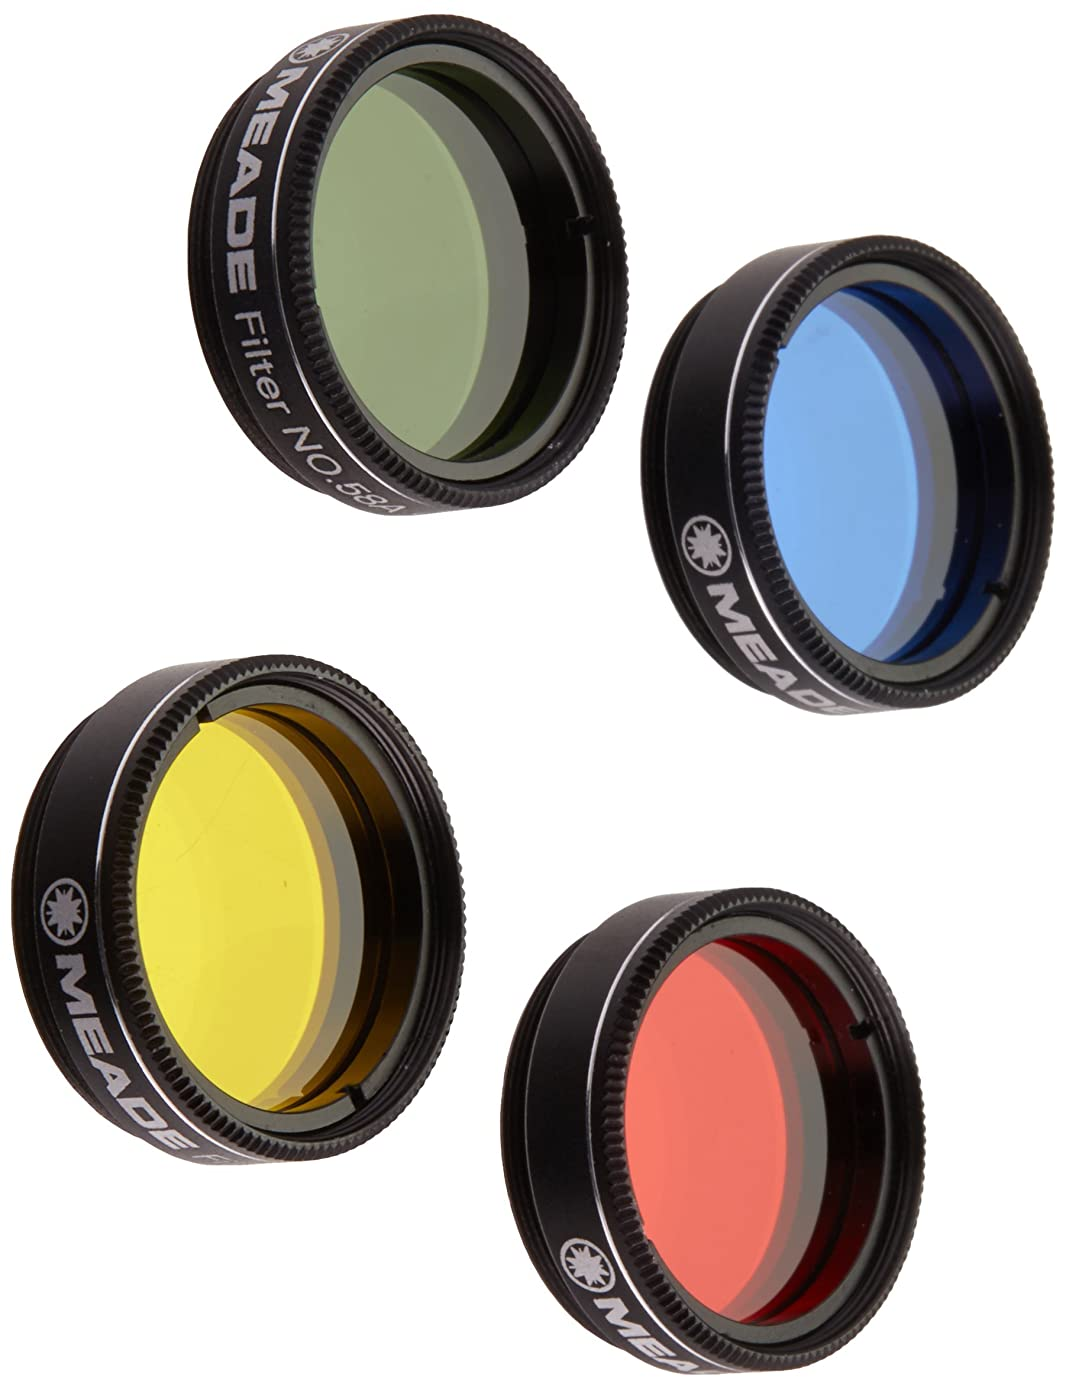 Meade 07530 Series 4000 Color Filter Set No.1 (Black)